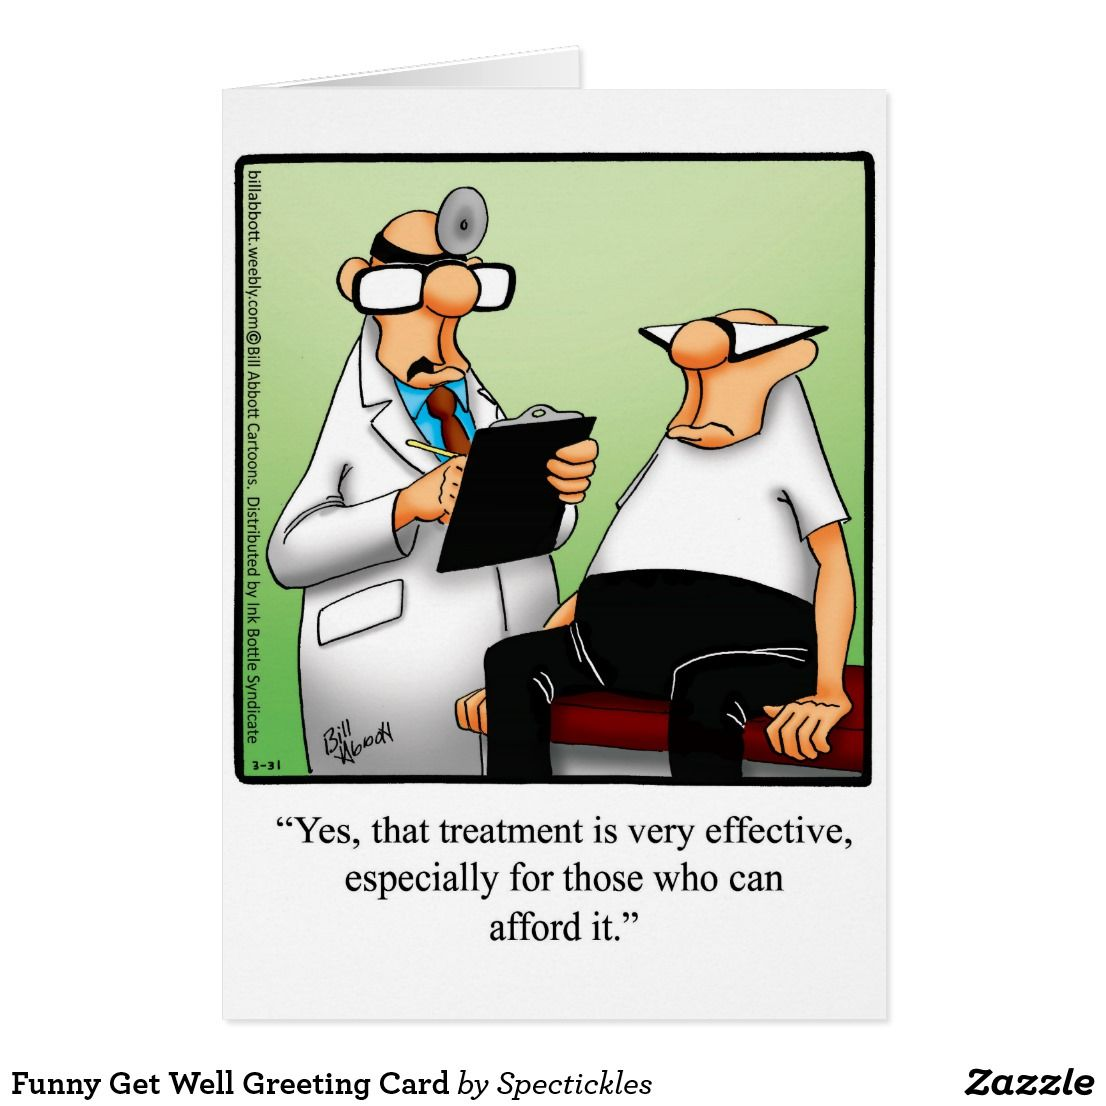 Funny get well greeting card funny greeting cards pinterest funny get well greeting card kristyandbryce Choice Image